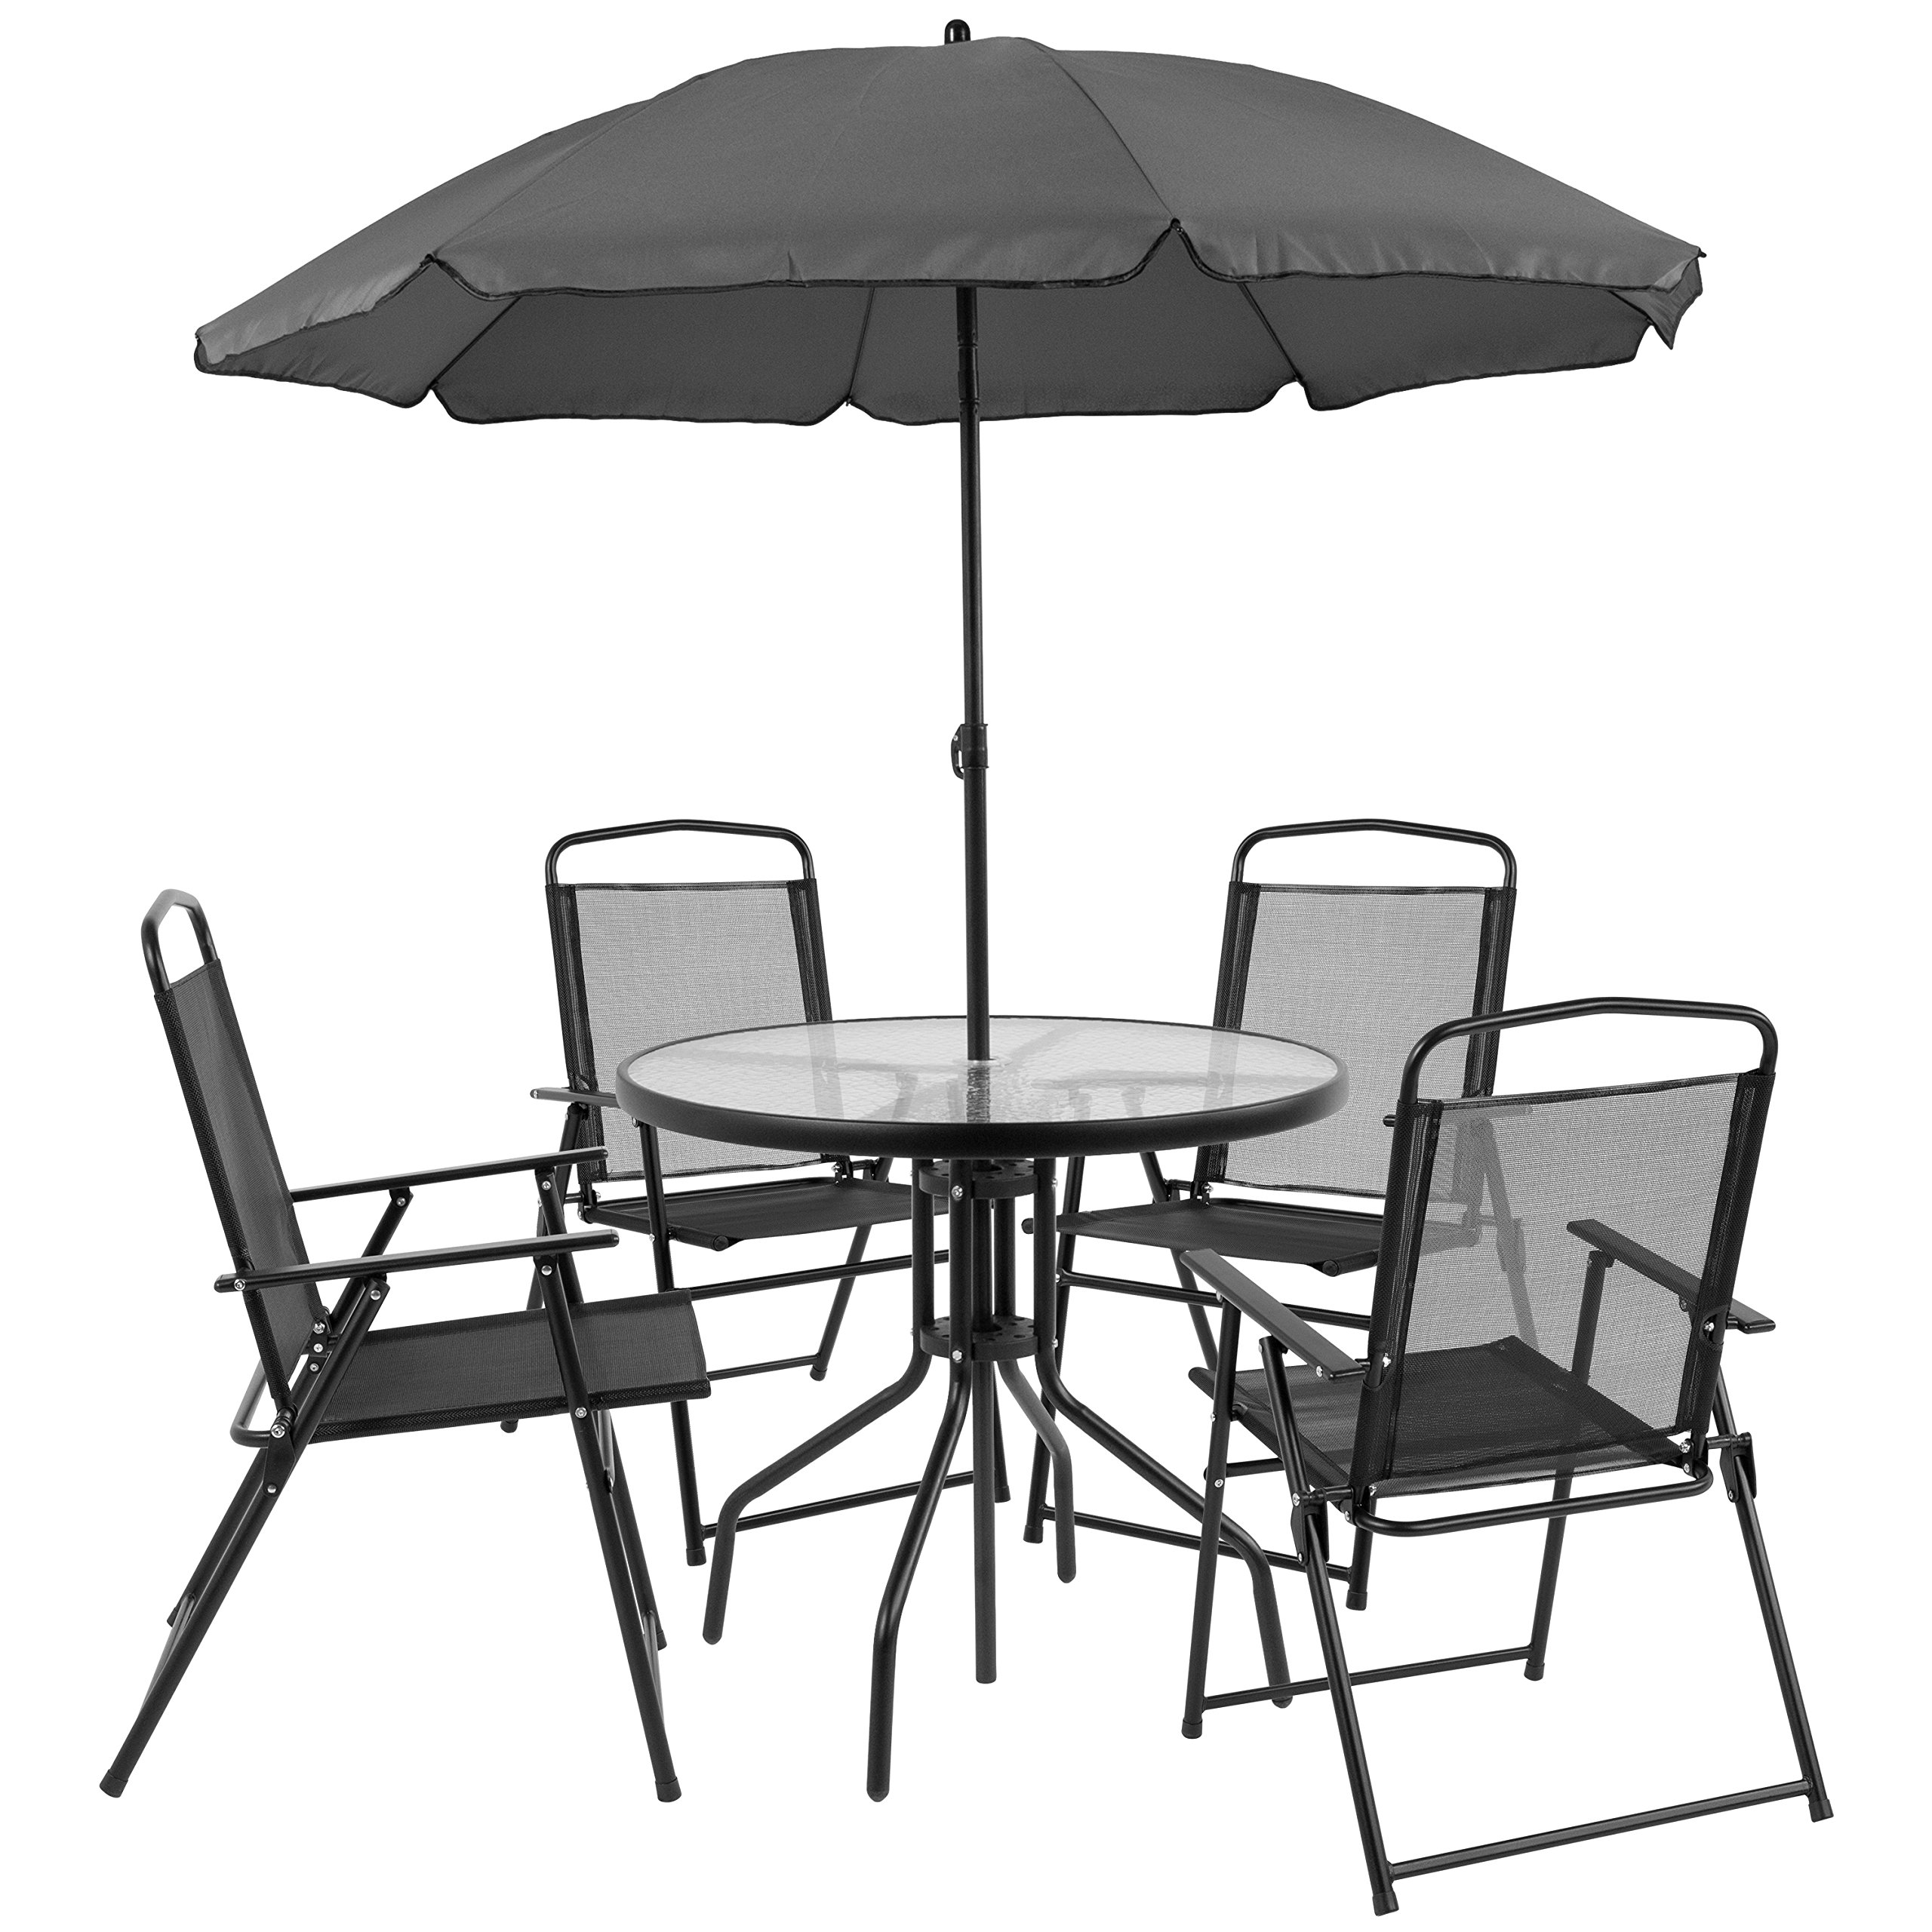 Flash Furniture Nantucket 6 Piece Black Patio Garden Set with Table, Umbrella and 4 Folding Chairs by Flash Furniture